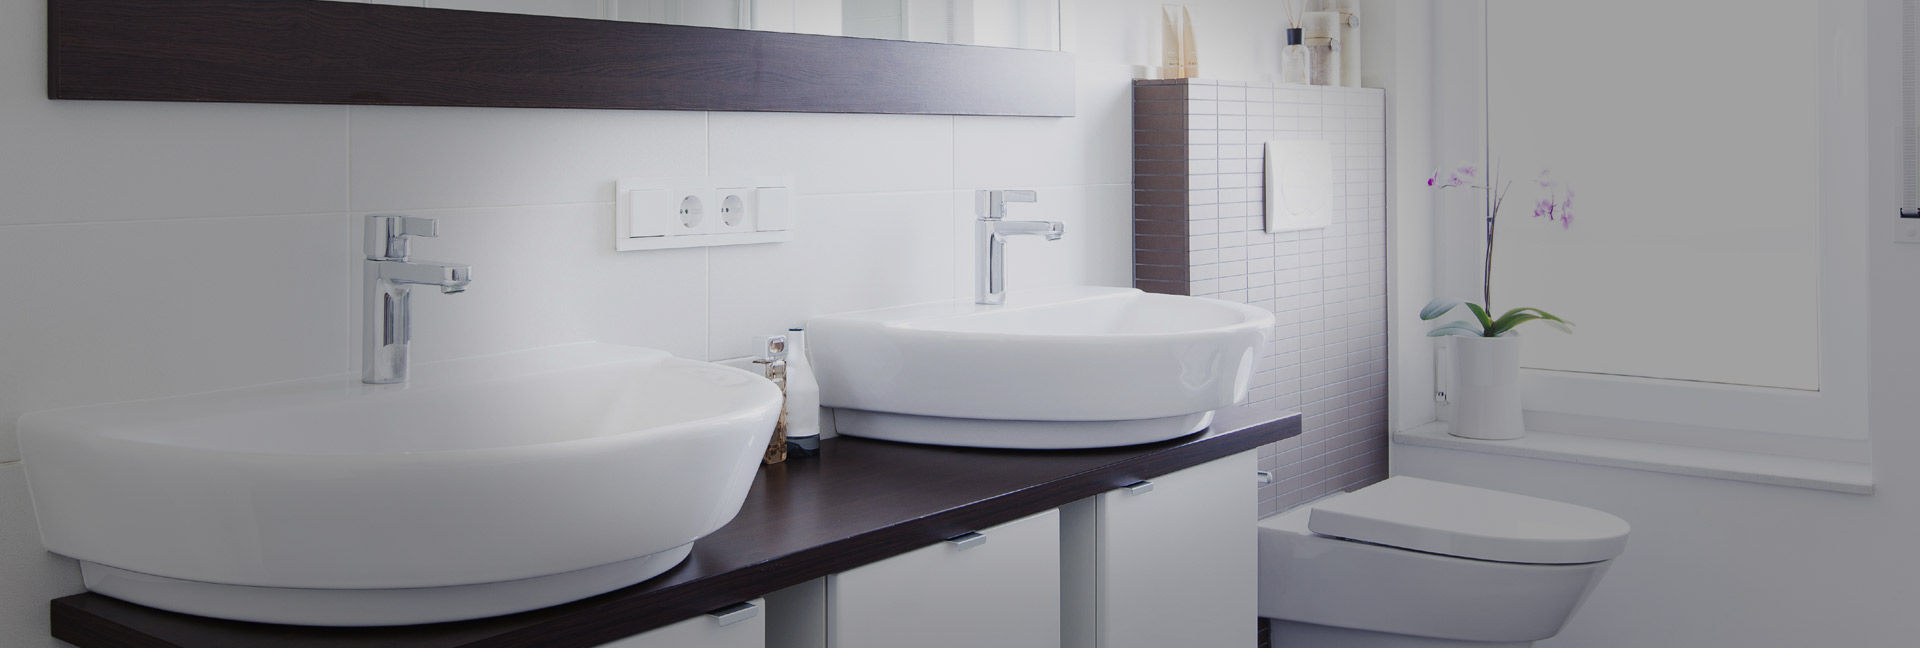 Bathroom Designs and Fitters in Bearsden and Milgavie